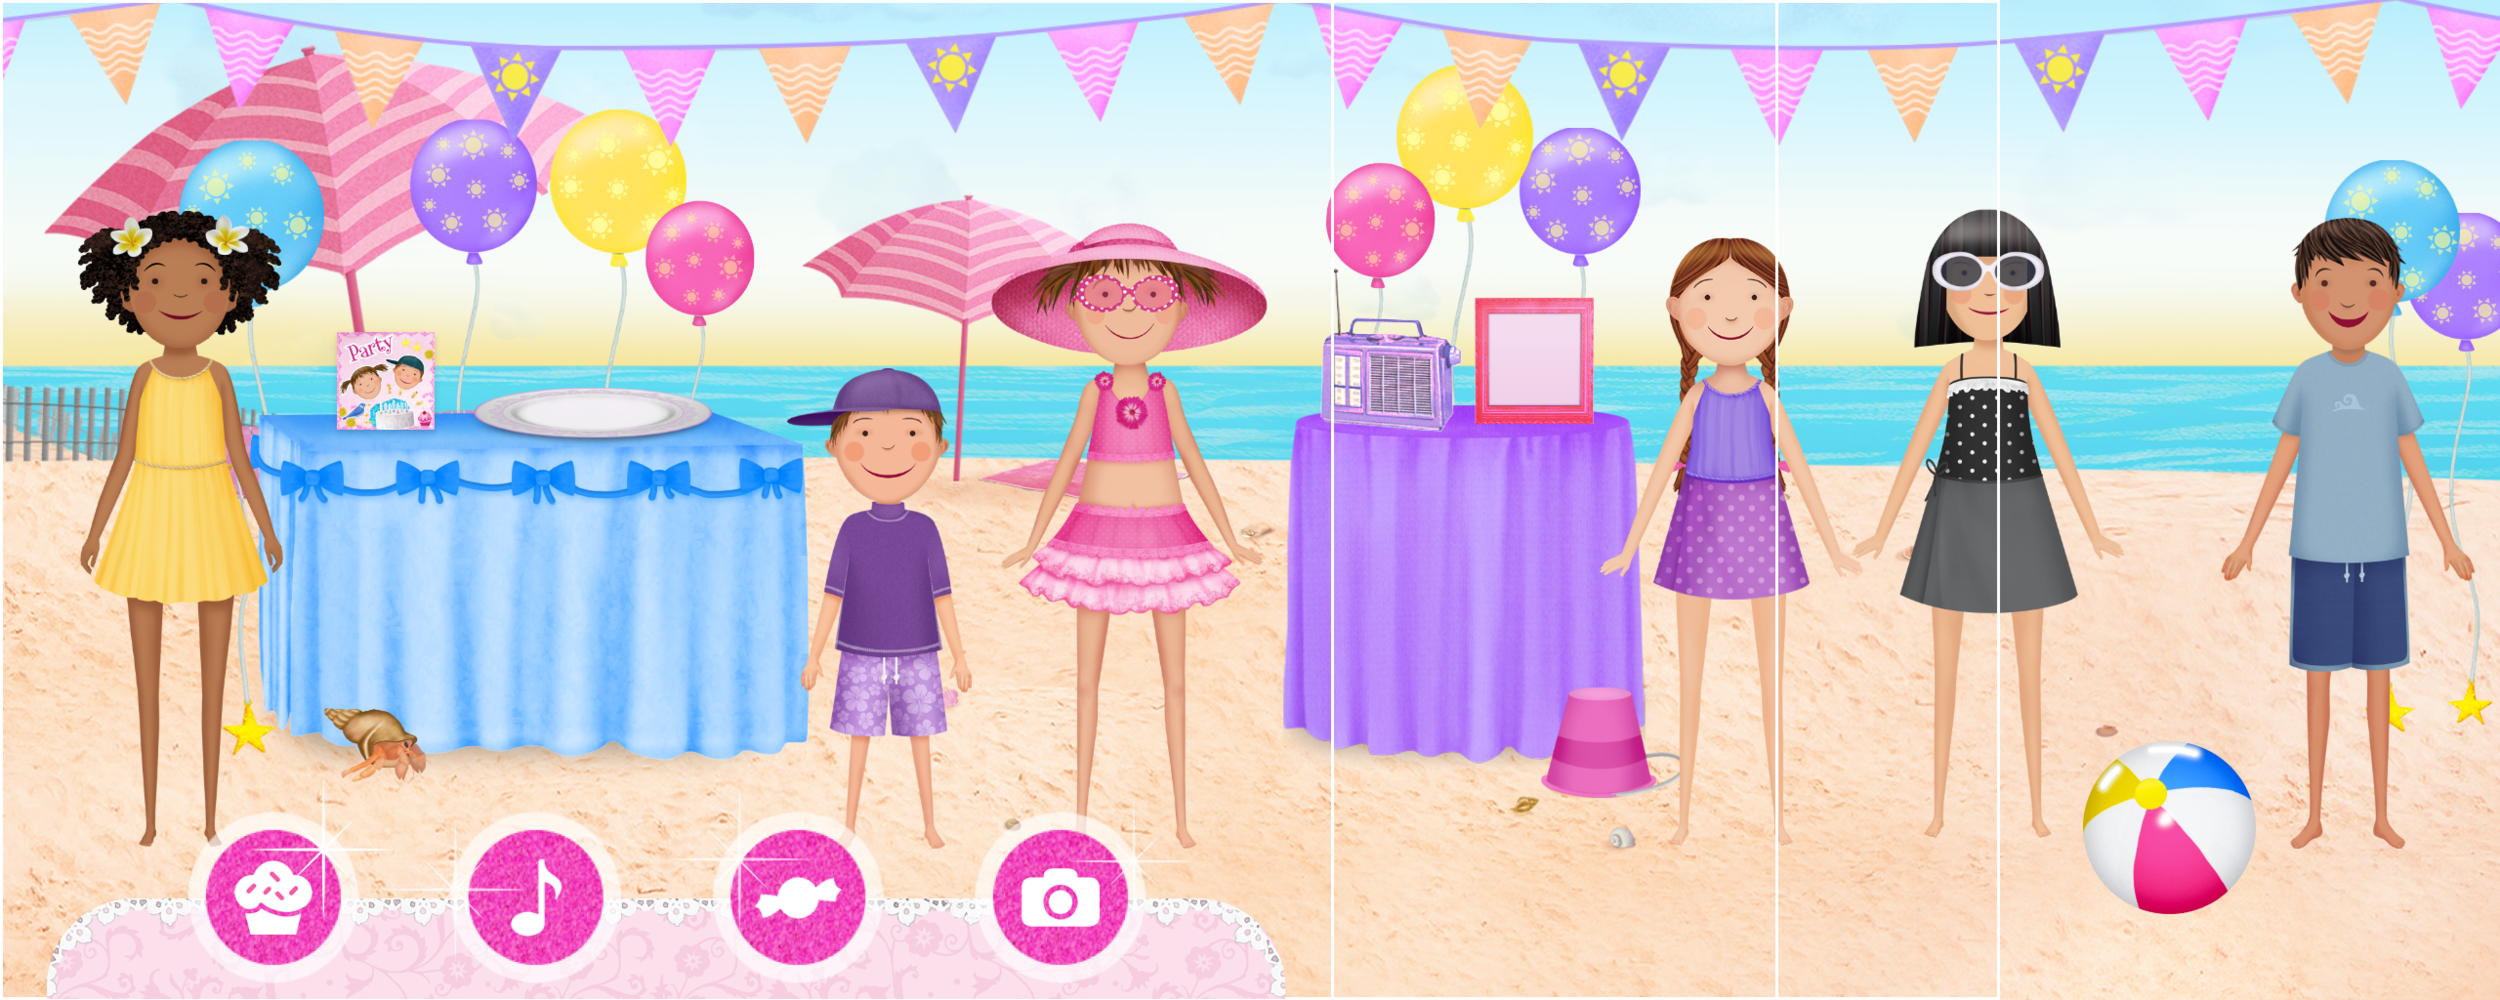 Party at the beach scene comp (white lines indicate screen sizes)